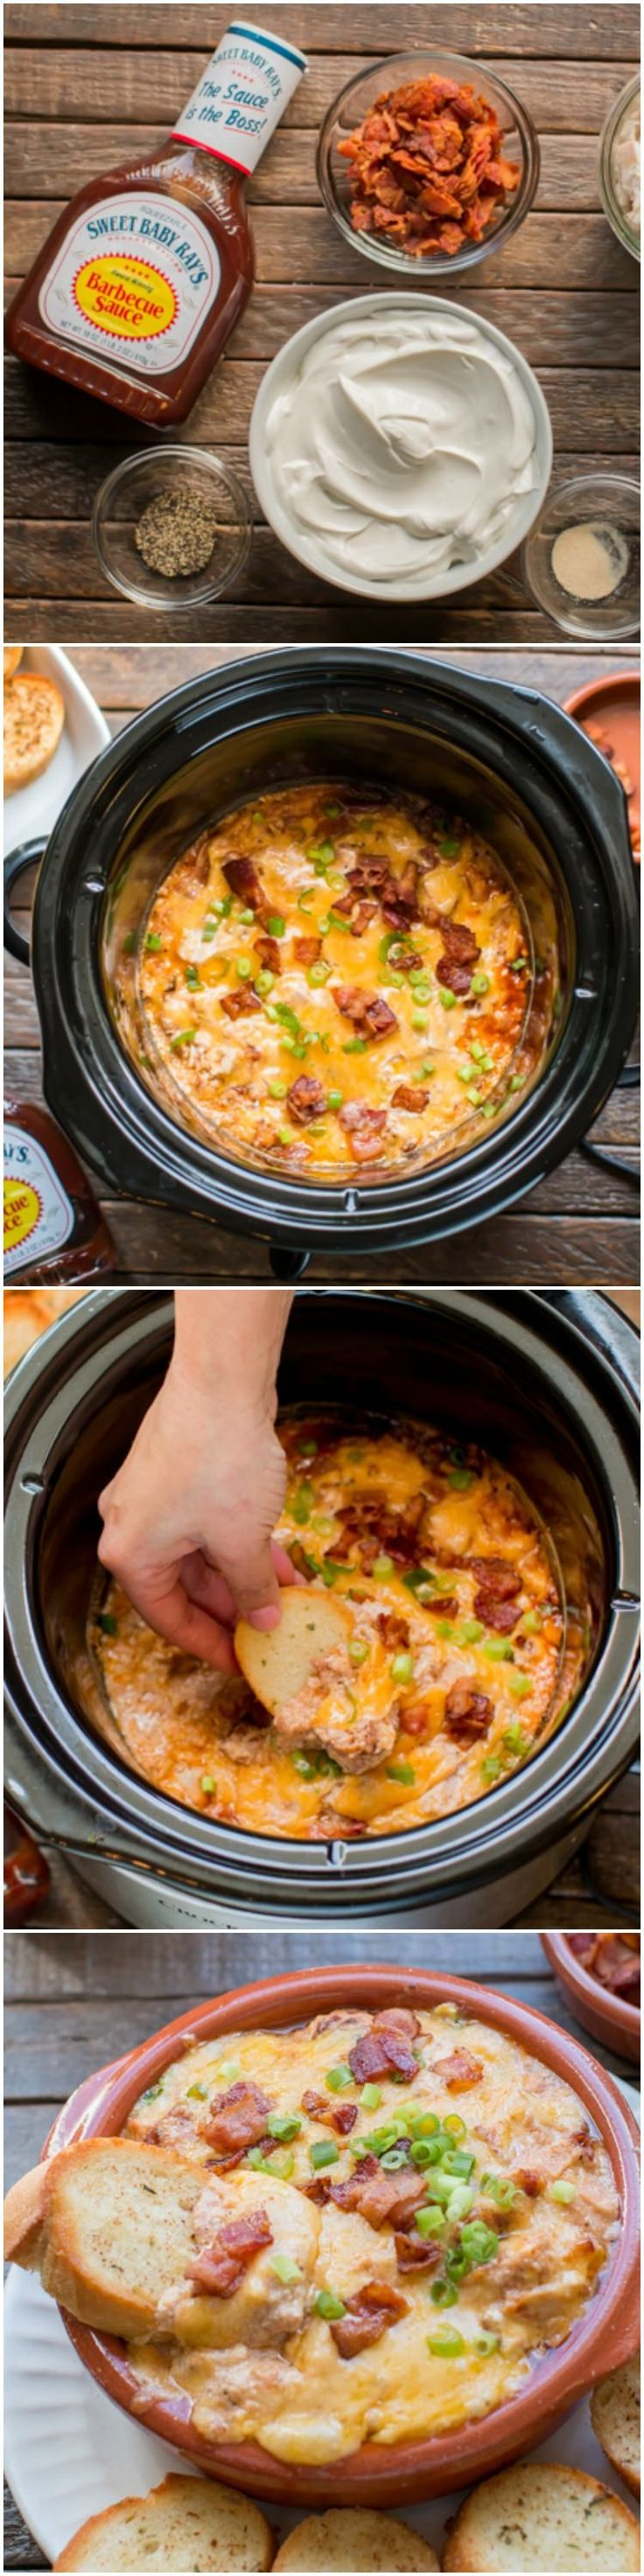 Slow Cooker Bacon Barbecue Chicken Dip served with garlic bread. @sbrbbq #ad